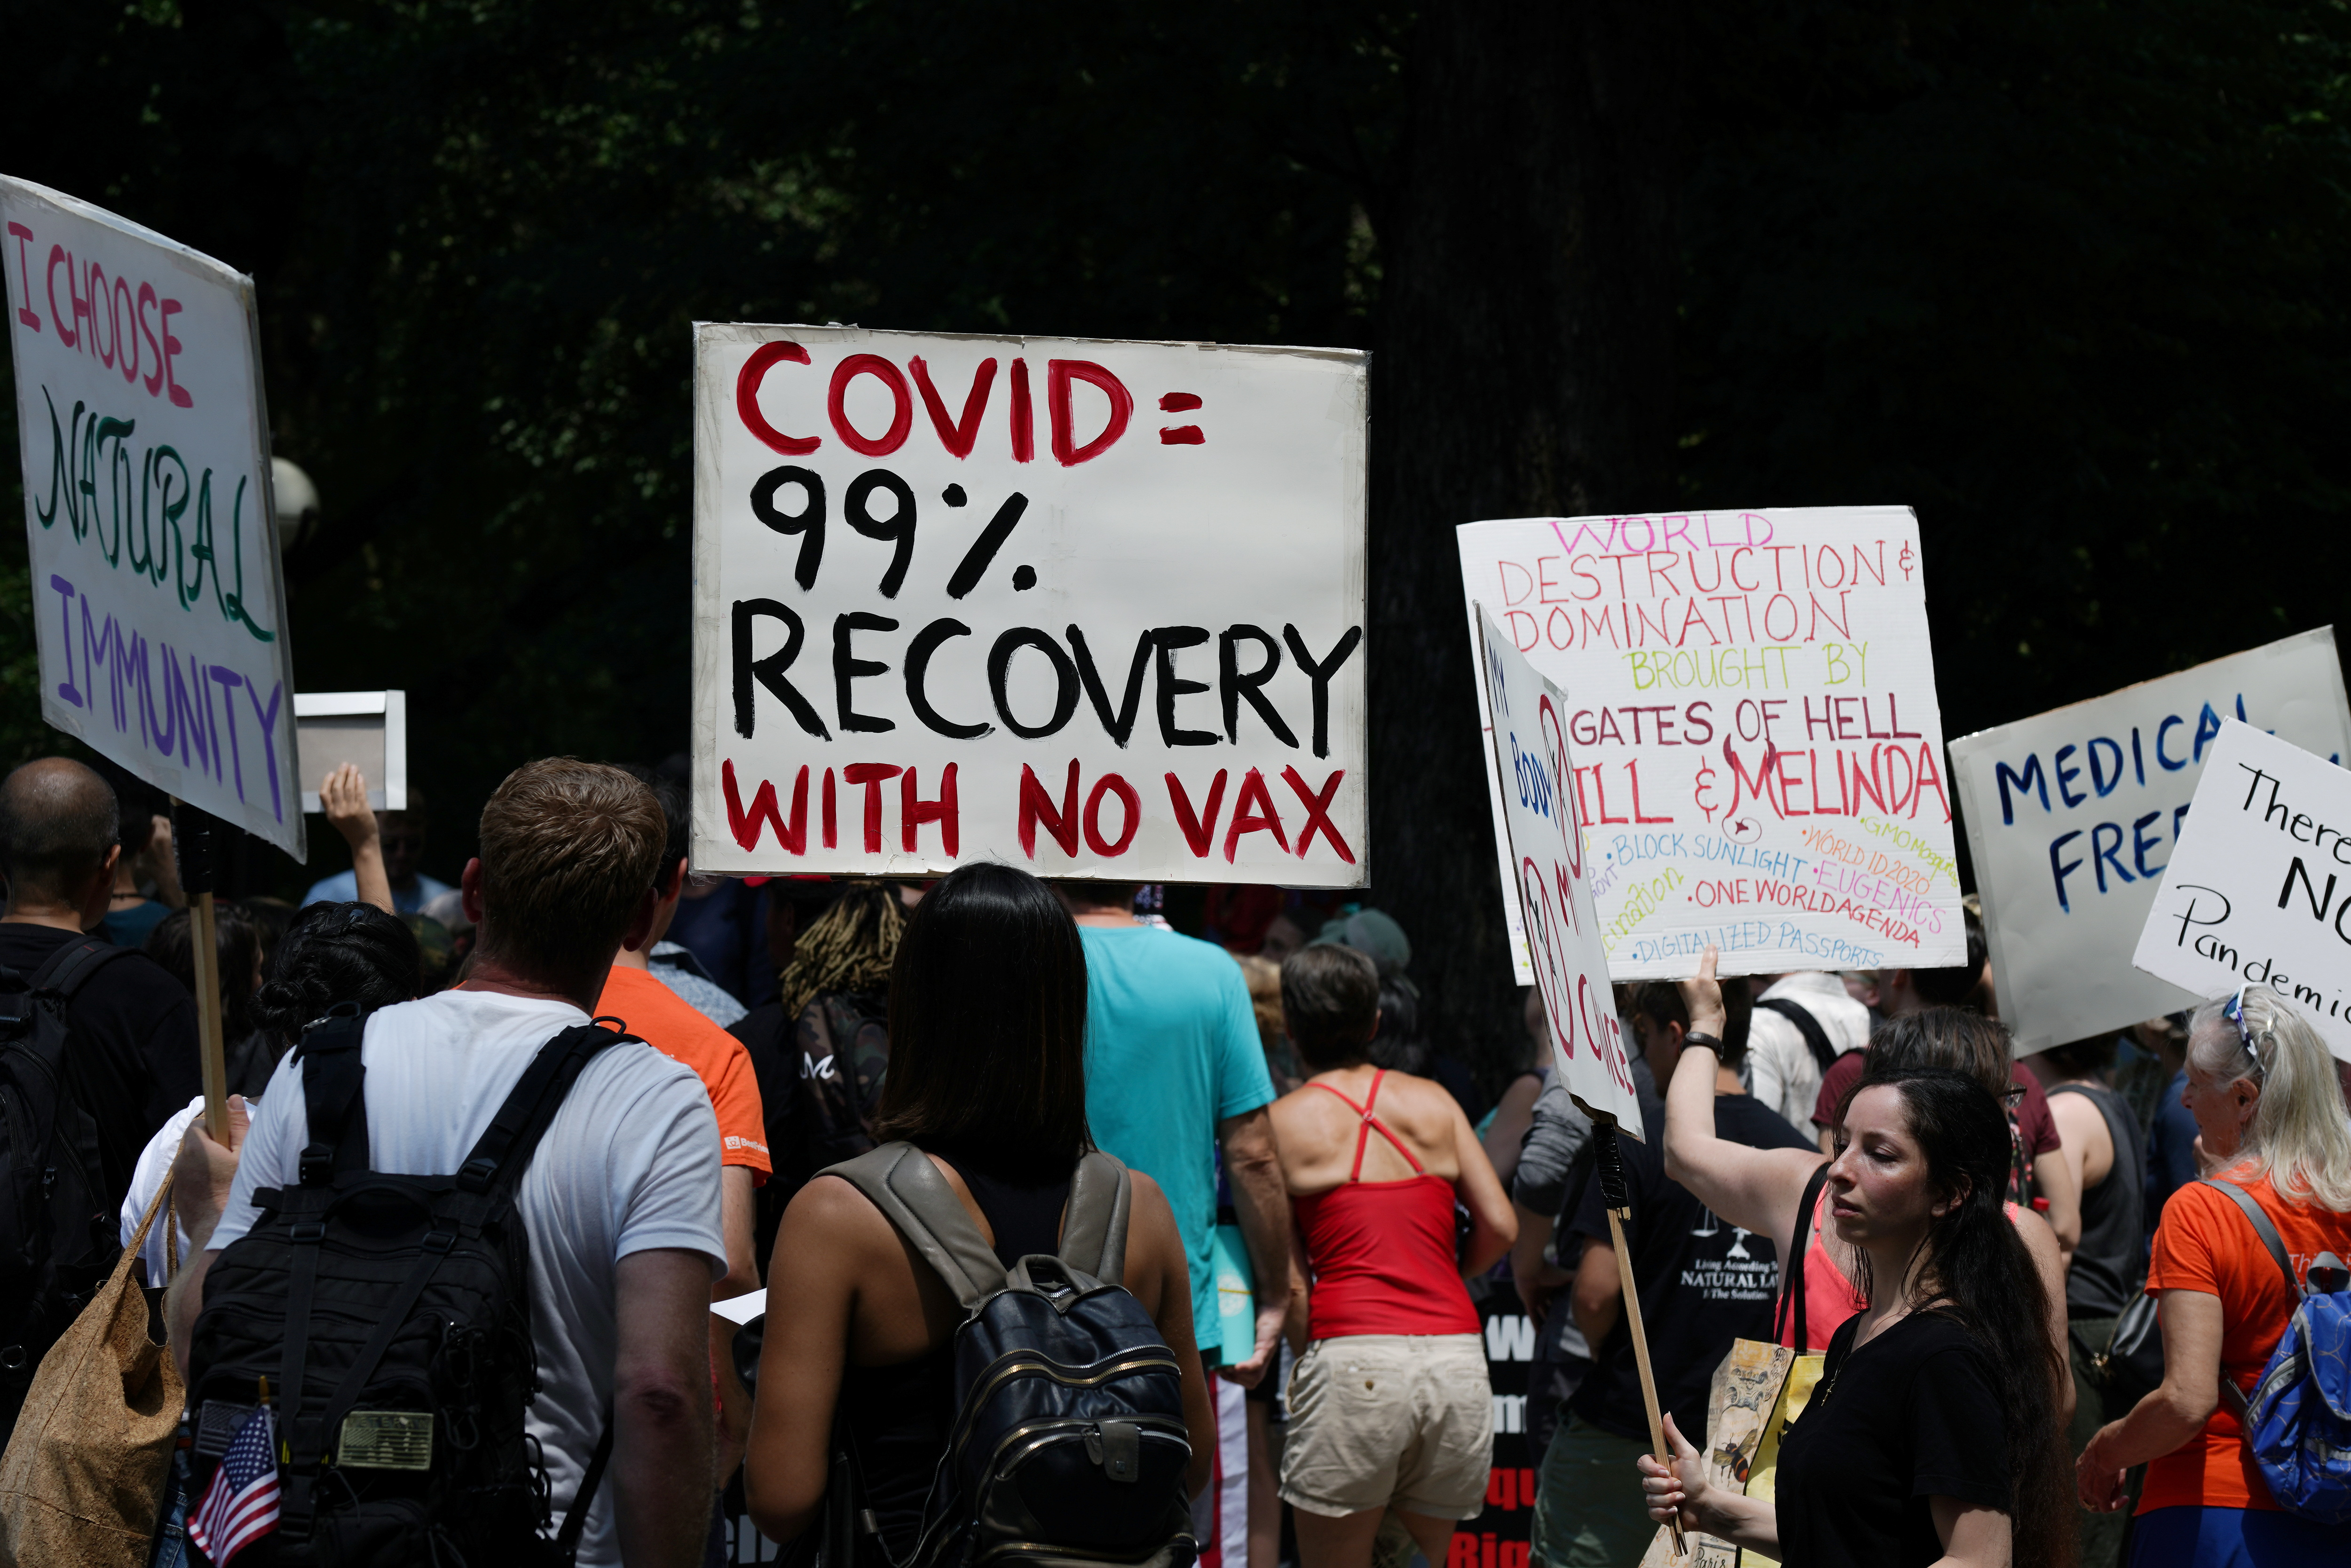 People gather during an anti-vaccine demonstration, amid the coronavirus disease (COVID-19) pandemic, in Central Park, New York City, U.S., July 24, 2021.  REUTERS/David 'Dee' Delgado